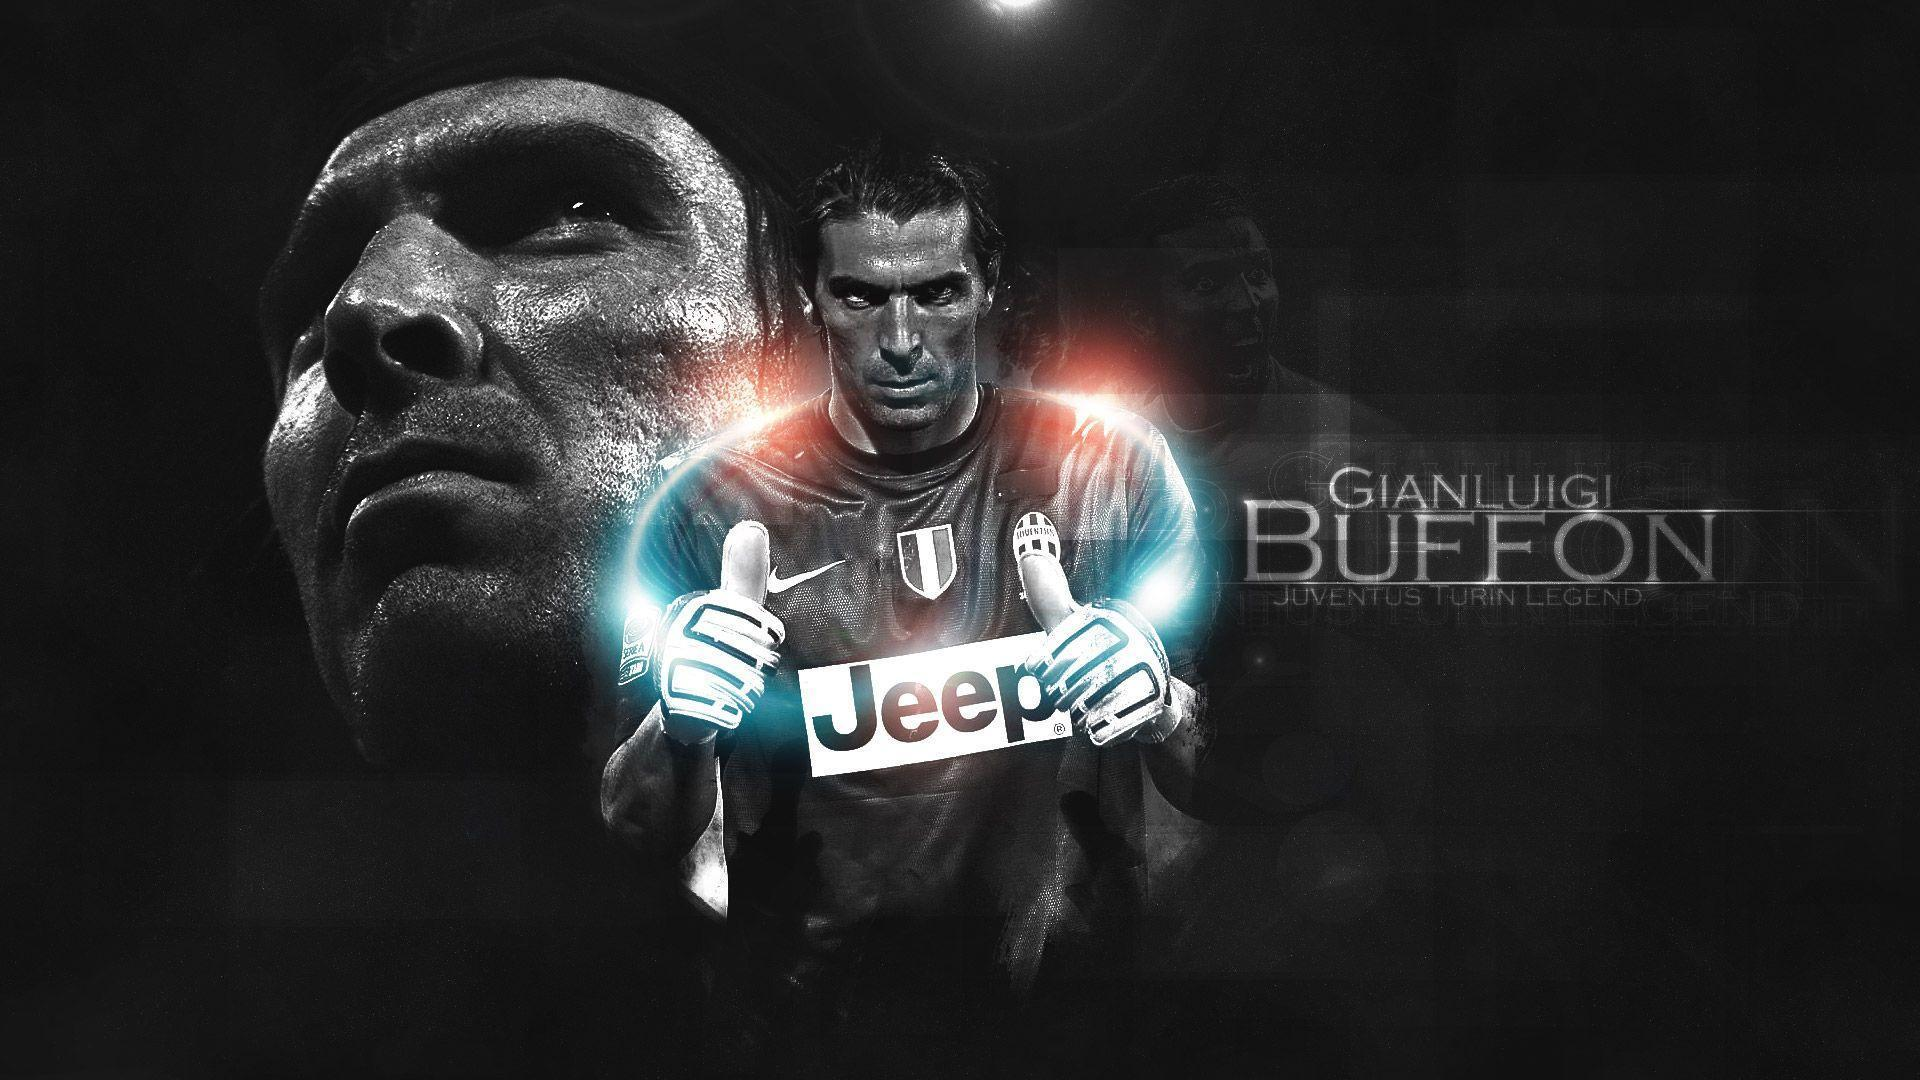 a3f174e5c28 Gianluigi Buffon Wallpapers - Wallpaper Cave